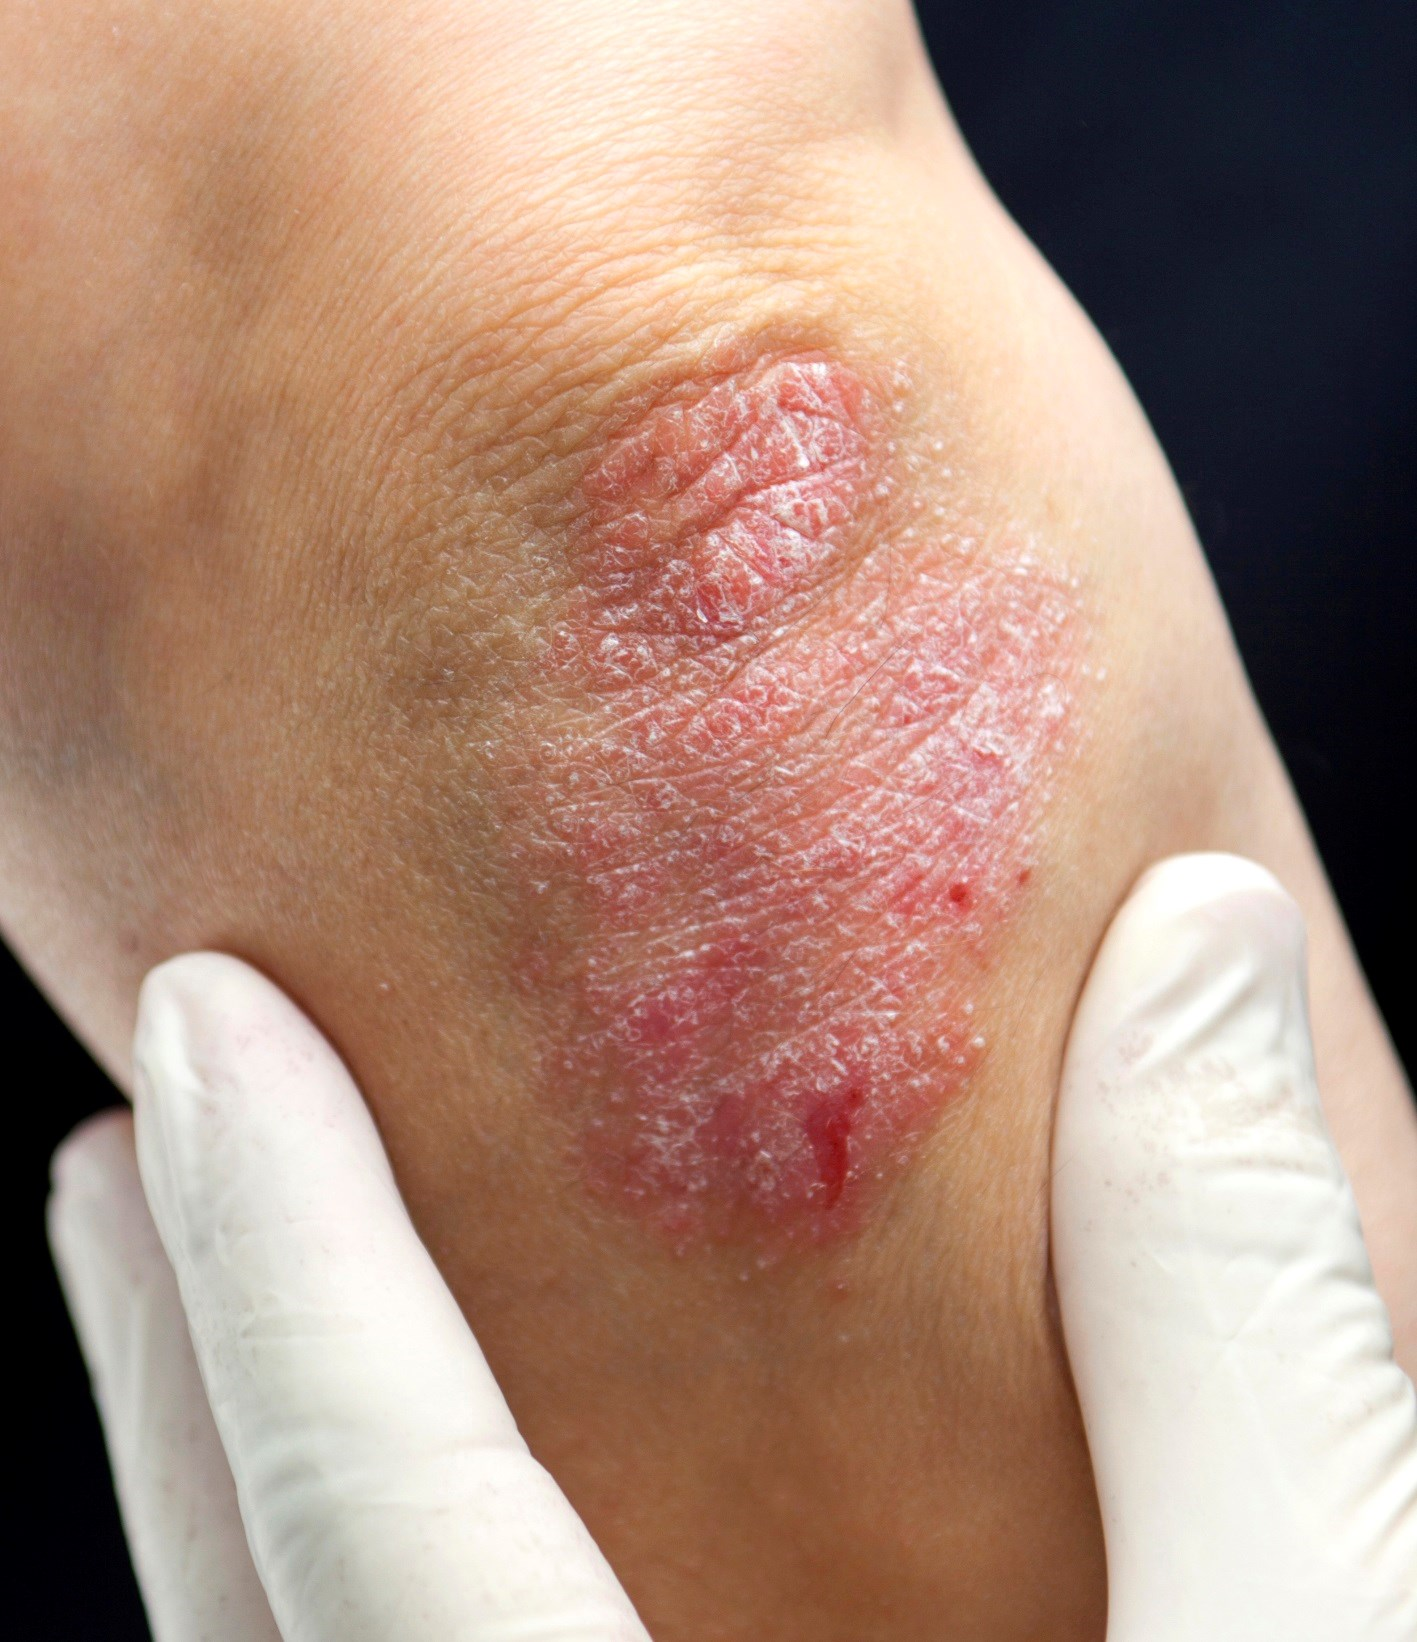 Adalimumab Biosimilar ABP 501 Safe, Effective for Psoriasis